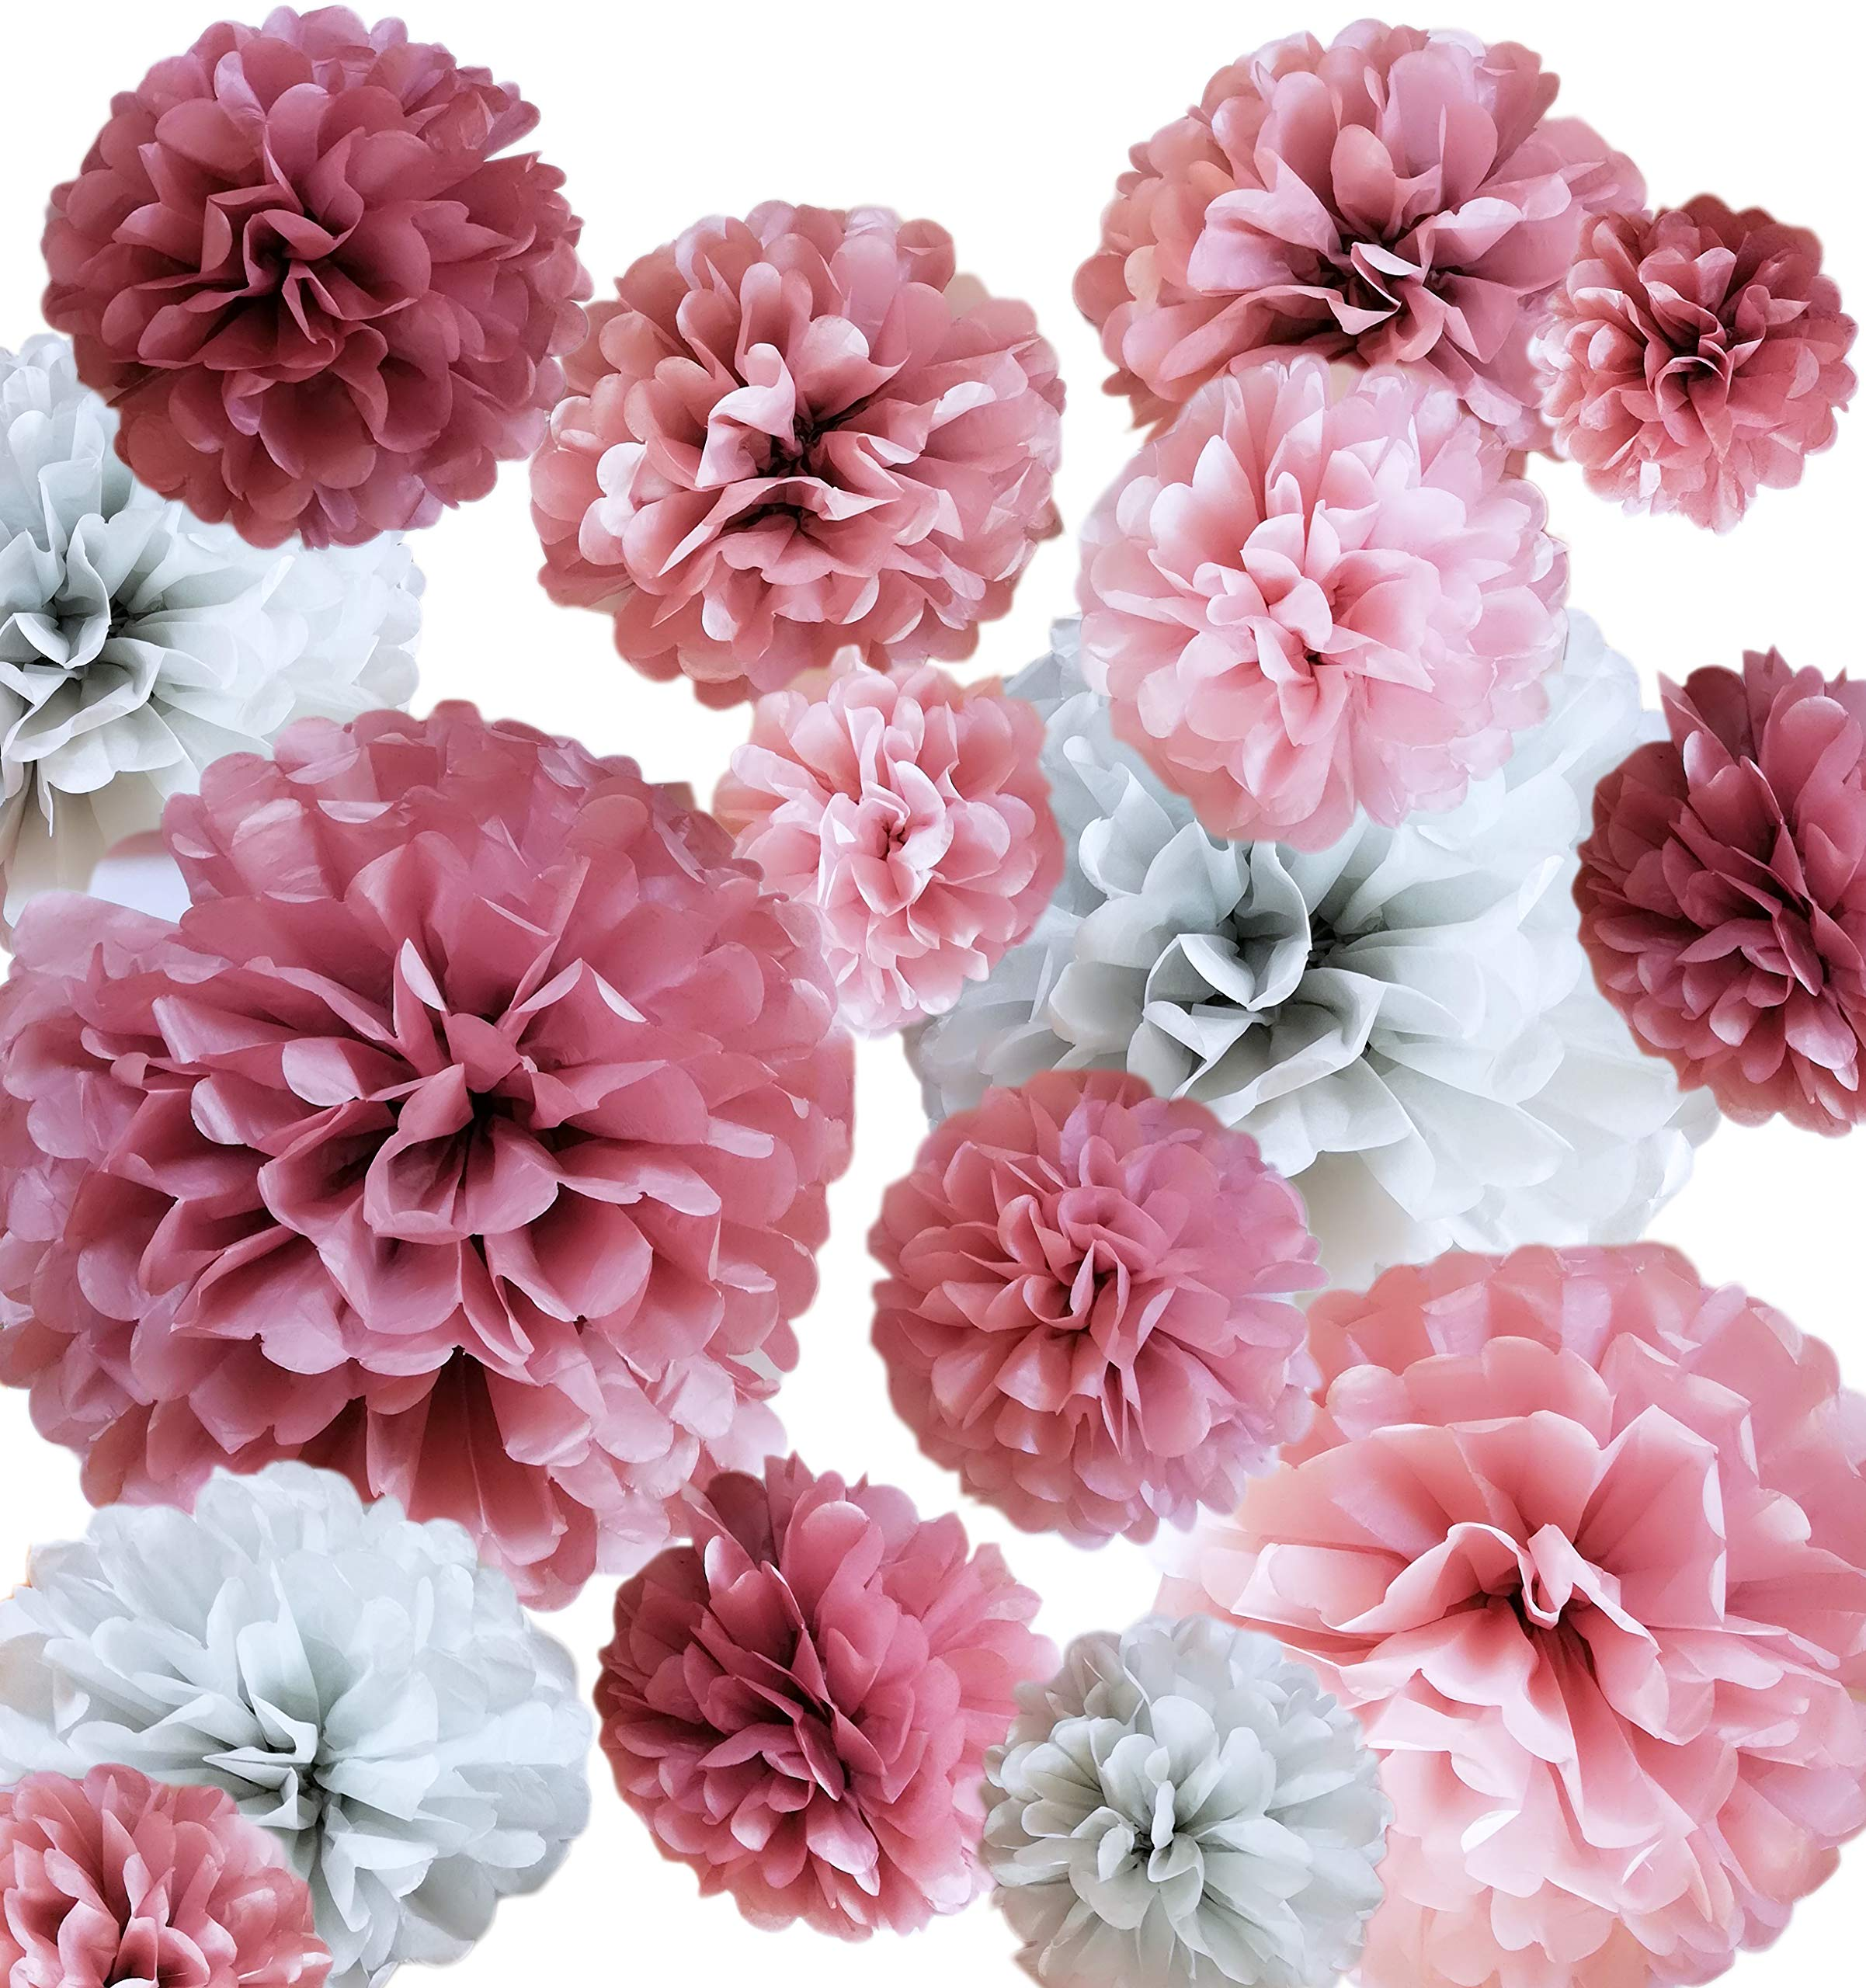 VINANT 20 PCS - Dusty Rose Party Decoration - Tissue Paper Pom Poms - Birthday Party - Baby Shower - Bridal Shower - Wedding - Bachelorette - Dusty Rose, Mauve, Blush Pink, Grey - 14'', 10'', 8'', 6'' by VINANT